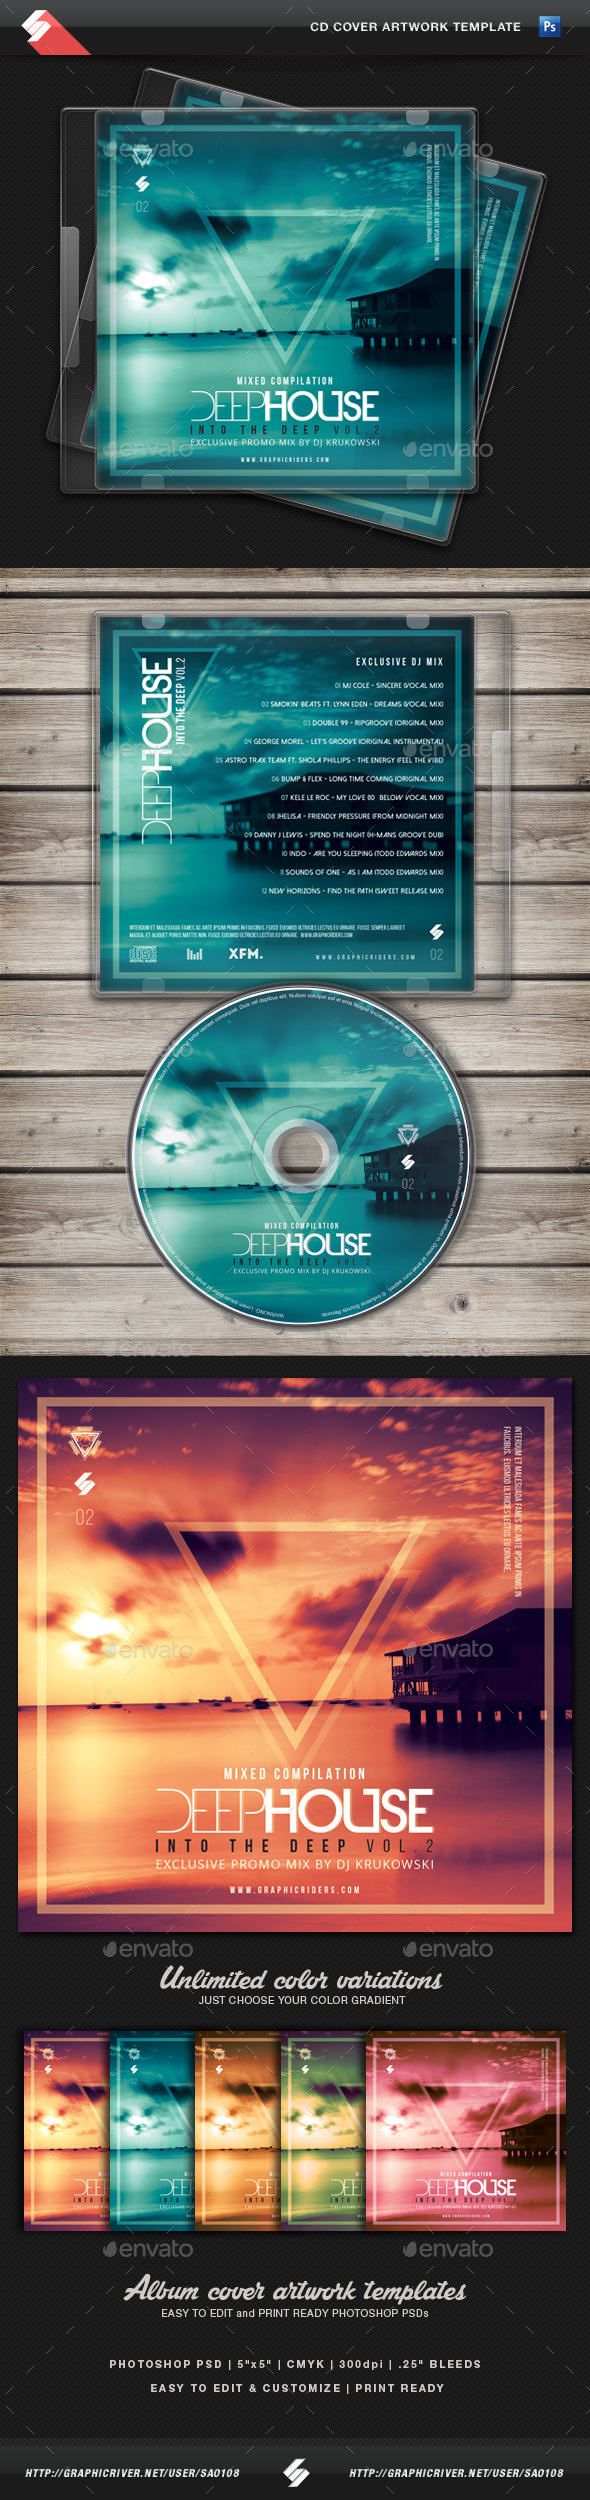 Deep House Mix 2 - CD Cover Artwork Template - CD & DVD Artwork Print Templates